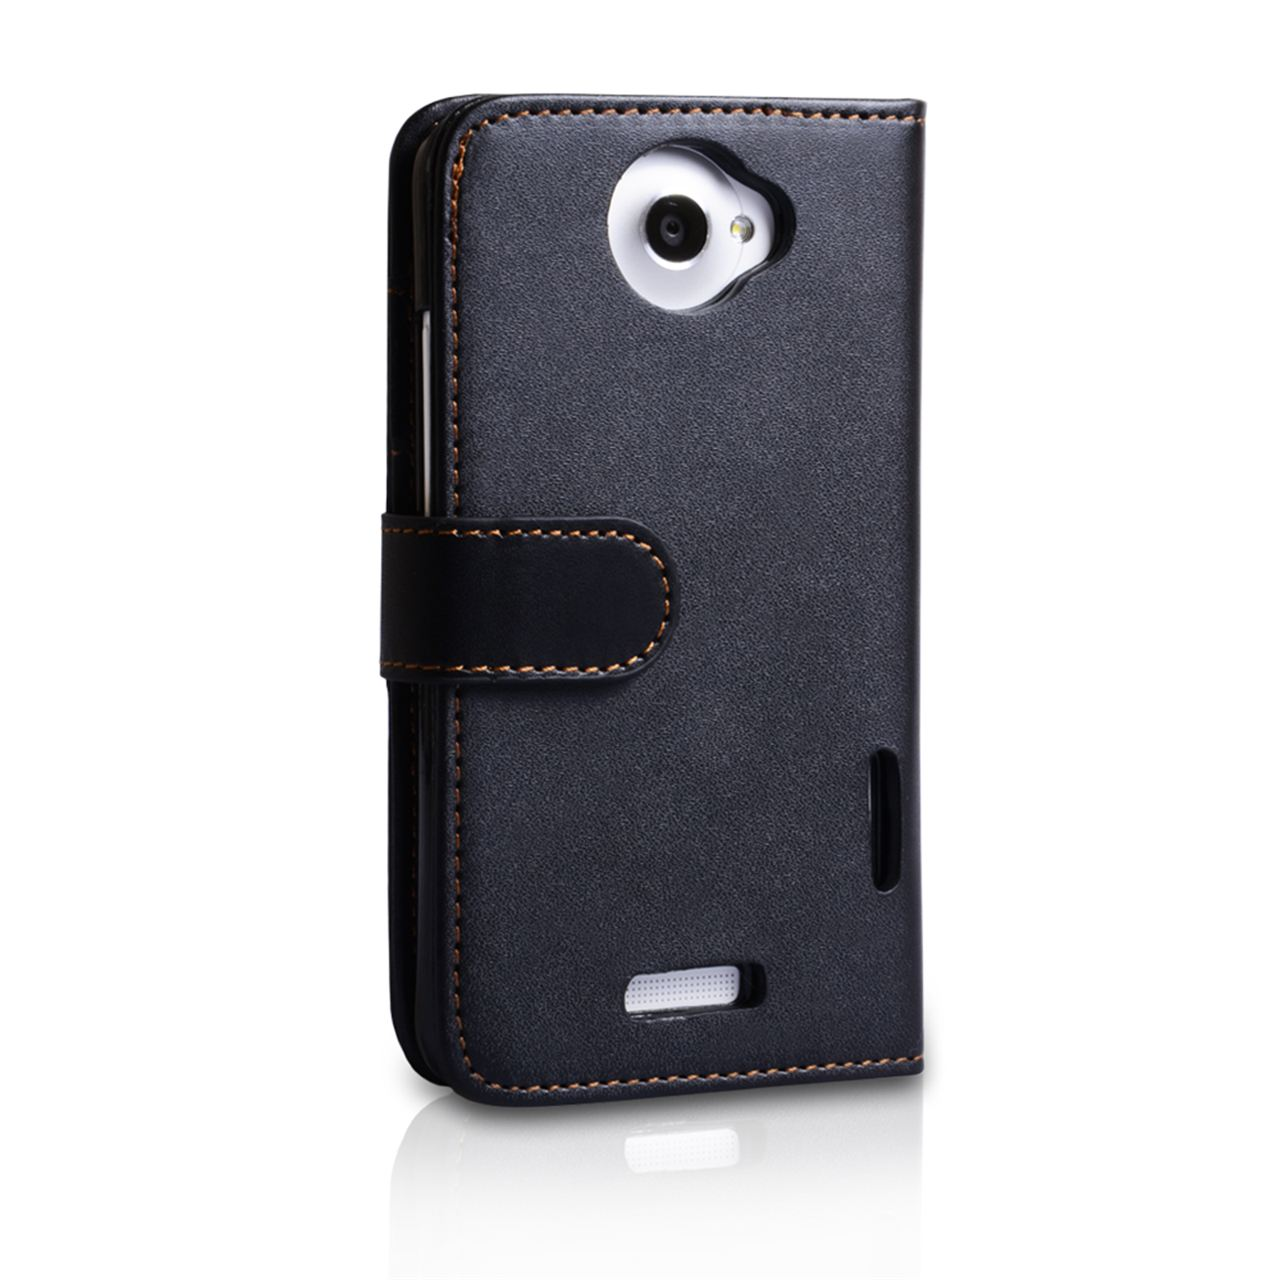 YouSave Accessories HTC One X Leather-Effect Wallet Case - Black